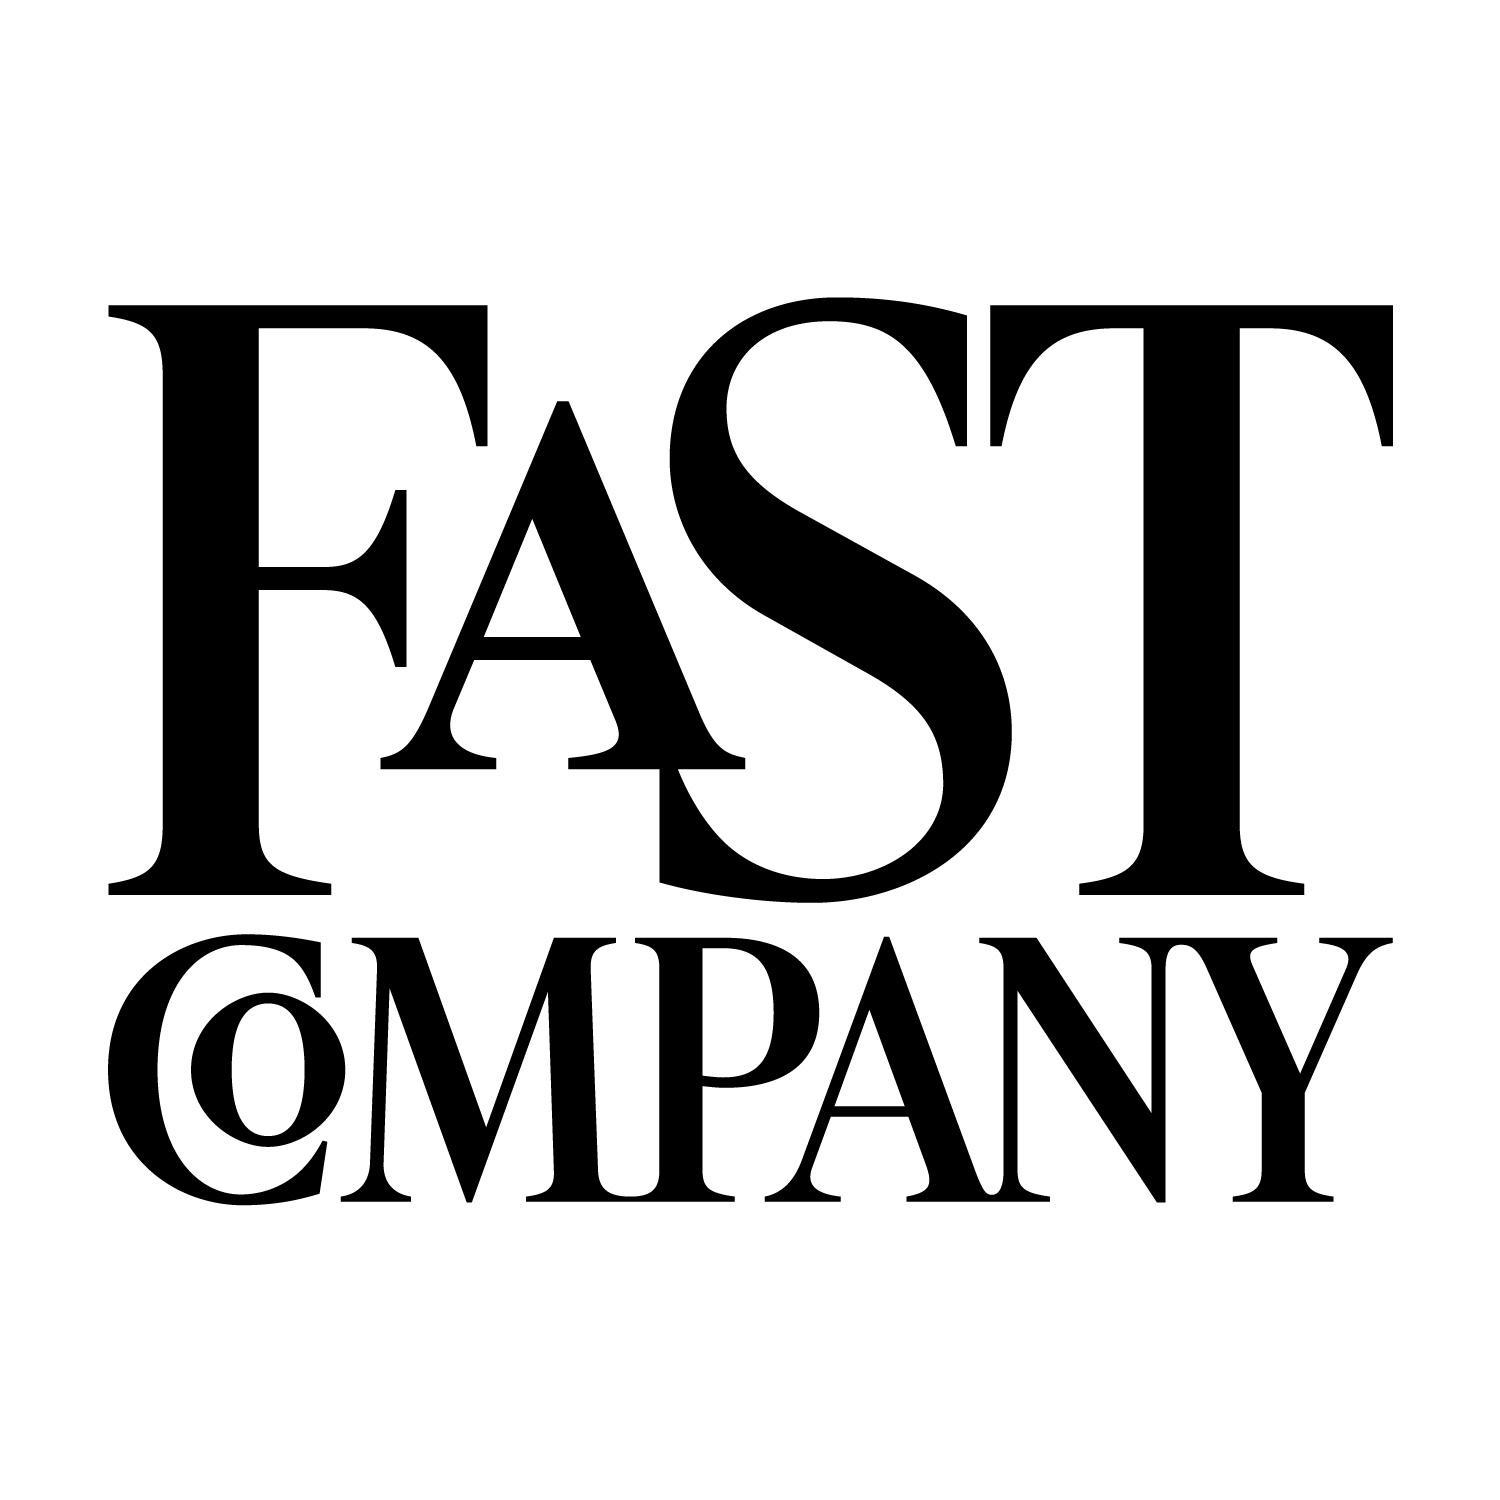 "FAST COMPANY: HOW HOTELTONIGHT'S LOGO BOOSTS REVENUE BY MORE THAN 10% A YEAR  Odysseus Arms work for HotelTonight featured in Fast Company. HotelTonight has the hardest working logo in the business. The bed-shaped ""H"" emblem figures prominently in the company's new ad campaign. And over the past five years, the logo has boosted HotelTonight's revenue by more than 10% each year.  Read More >"